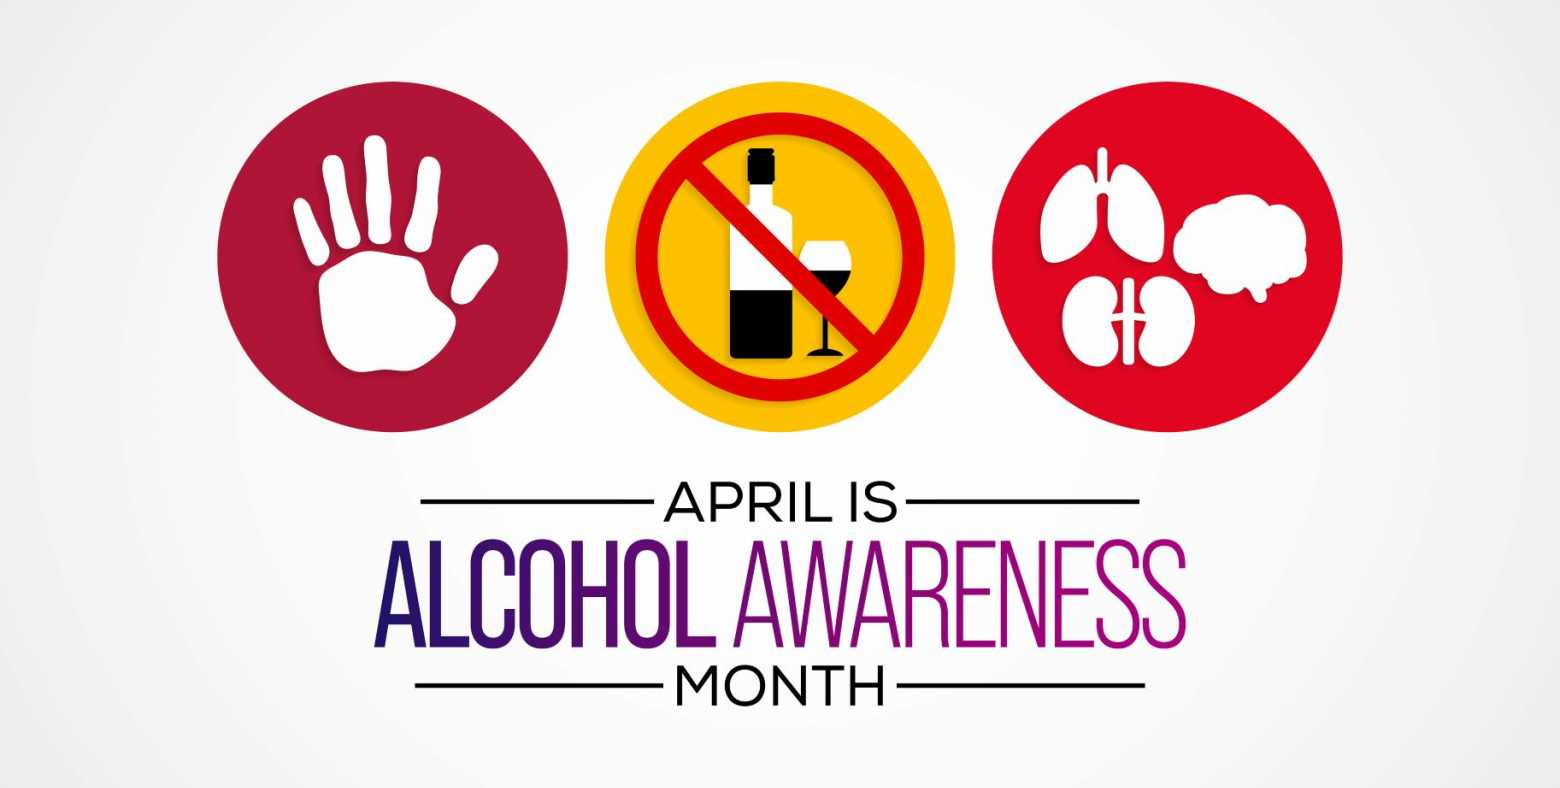 Alcohol Awareness Month with images of hand, no alcohol and organs